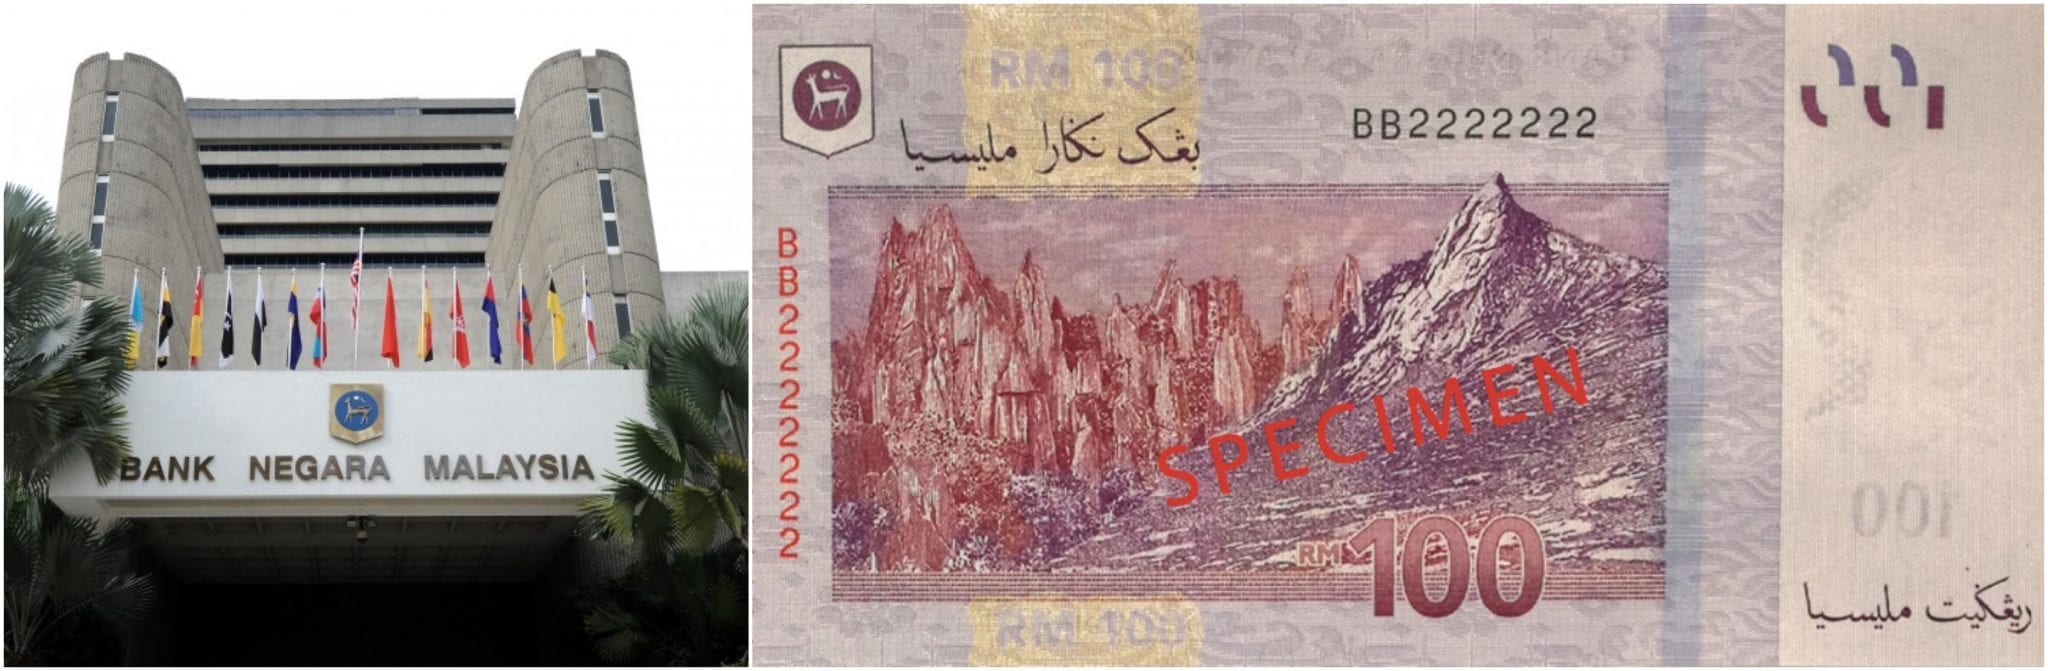 Why this Special Malaysian Banknote is Worth RM37,000